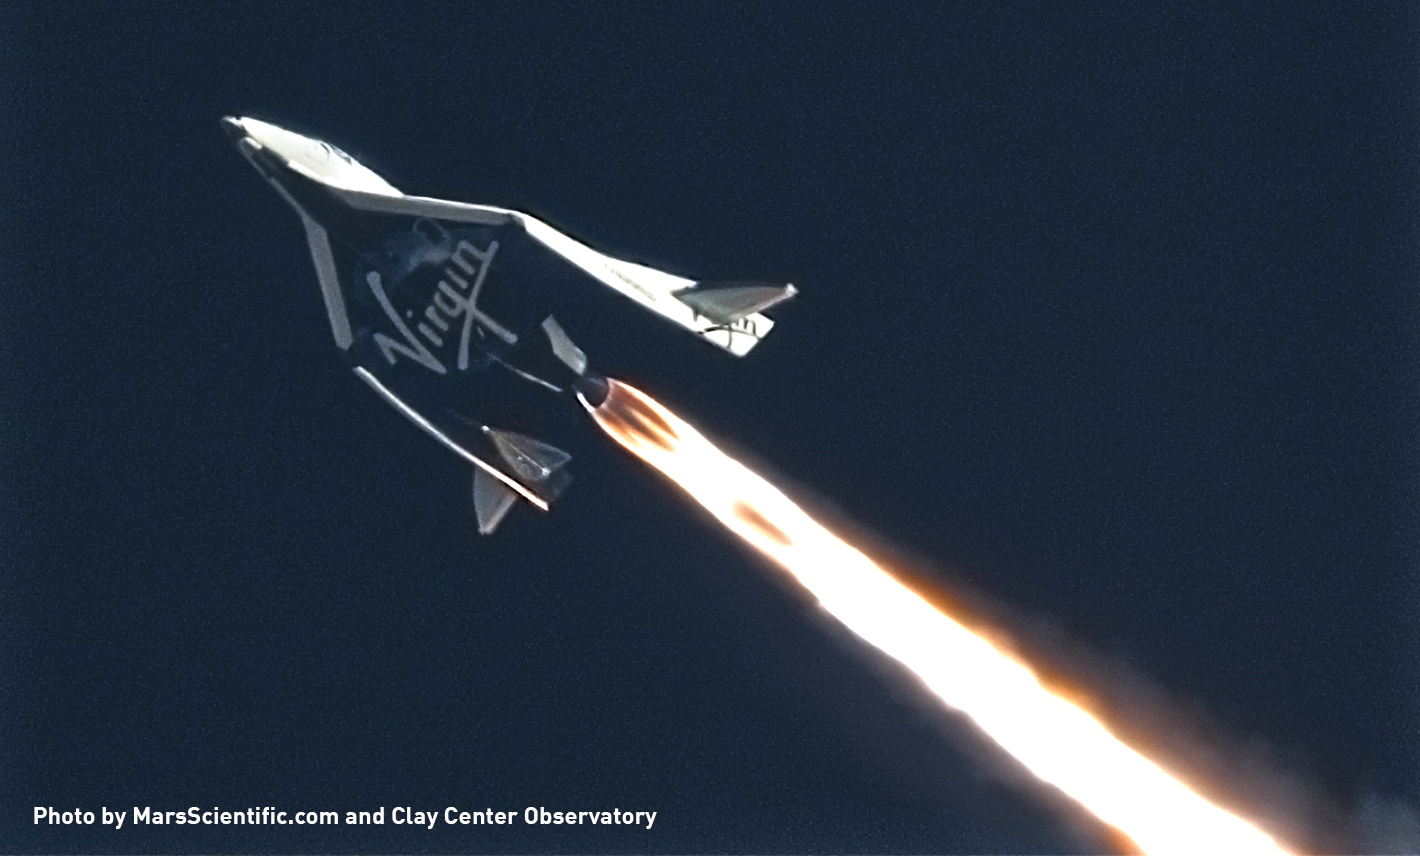 SpaceShipTwo tijekom leta (Credit: MarsScientific.com)